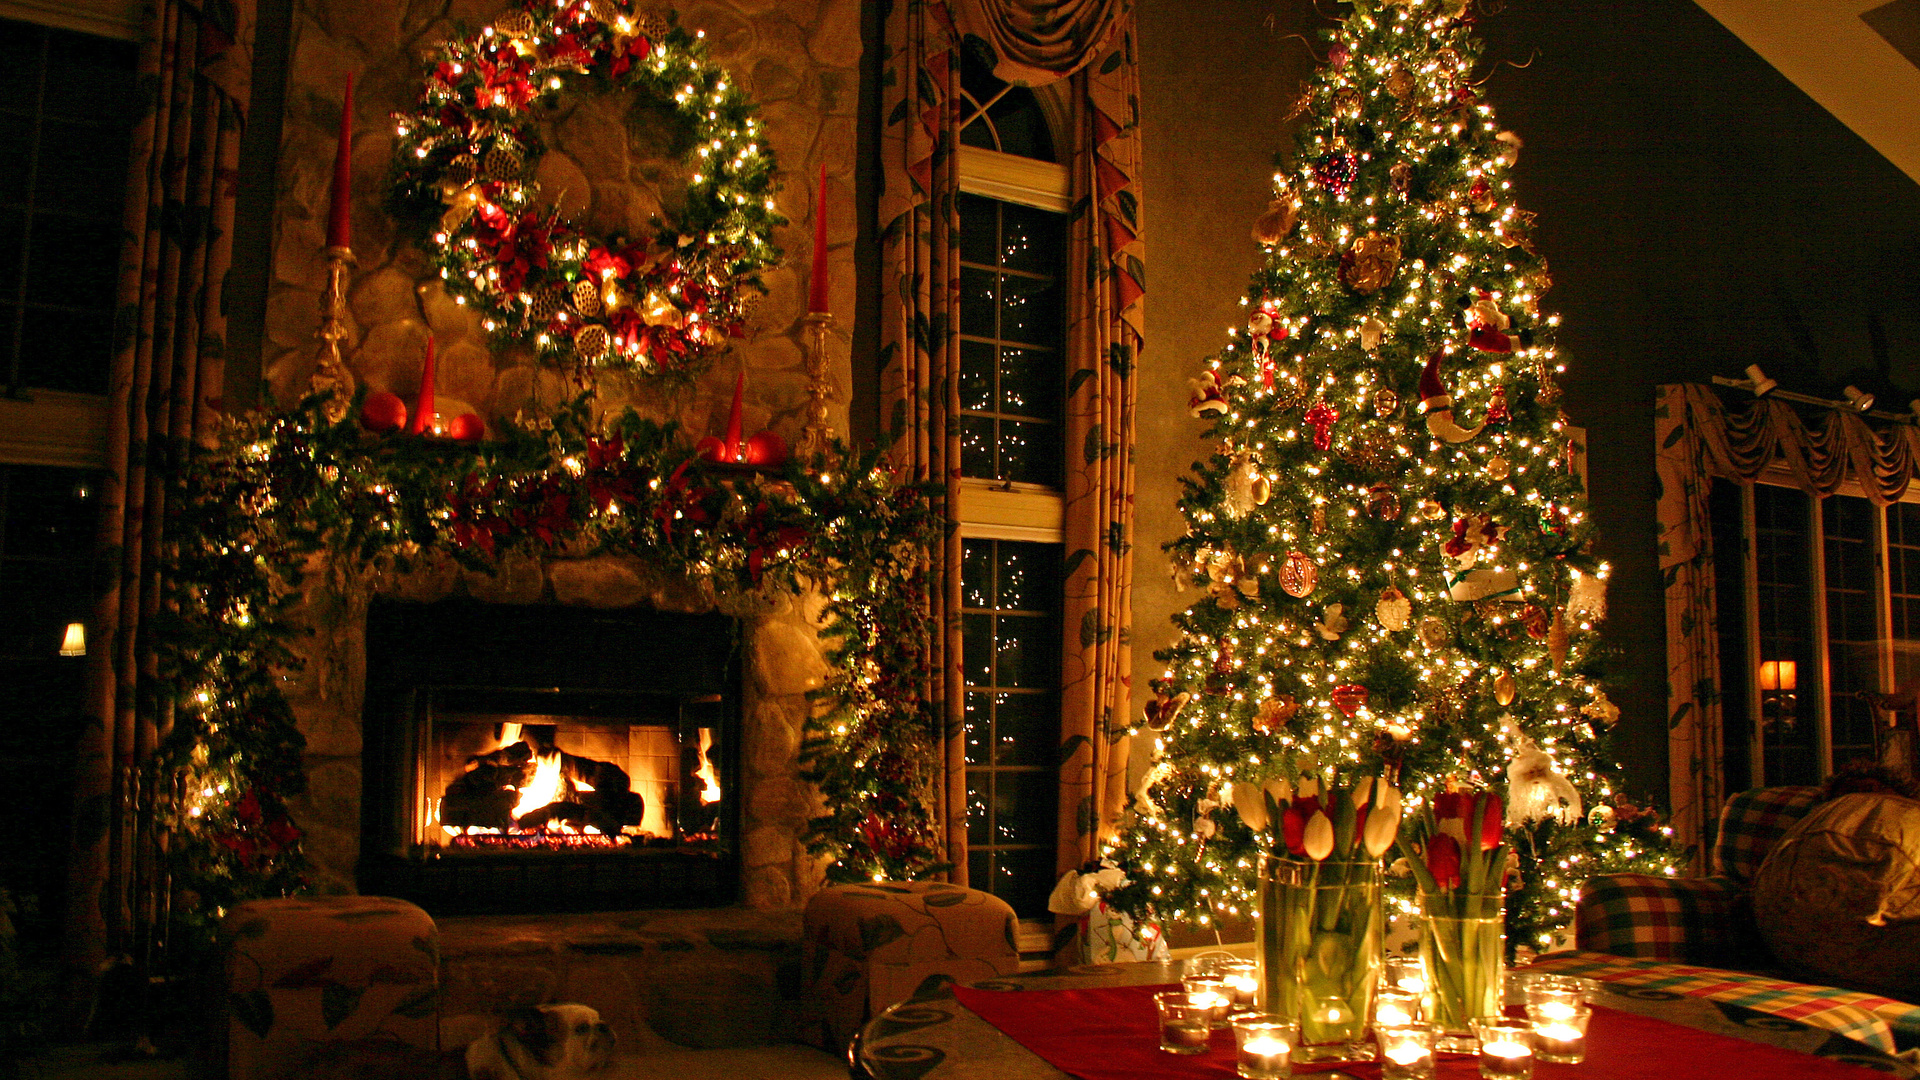 merry christmas wallpapers pic hd